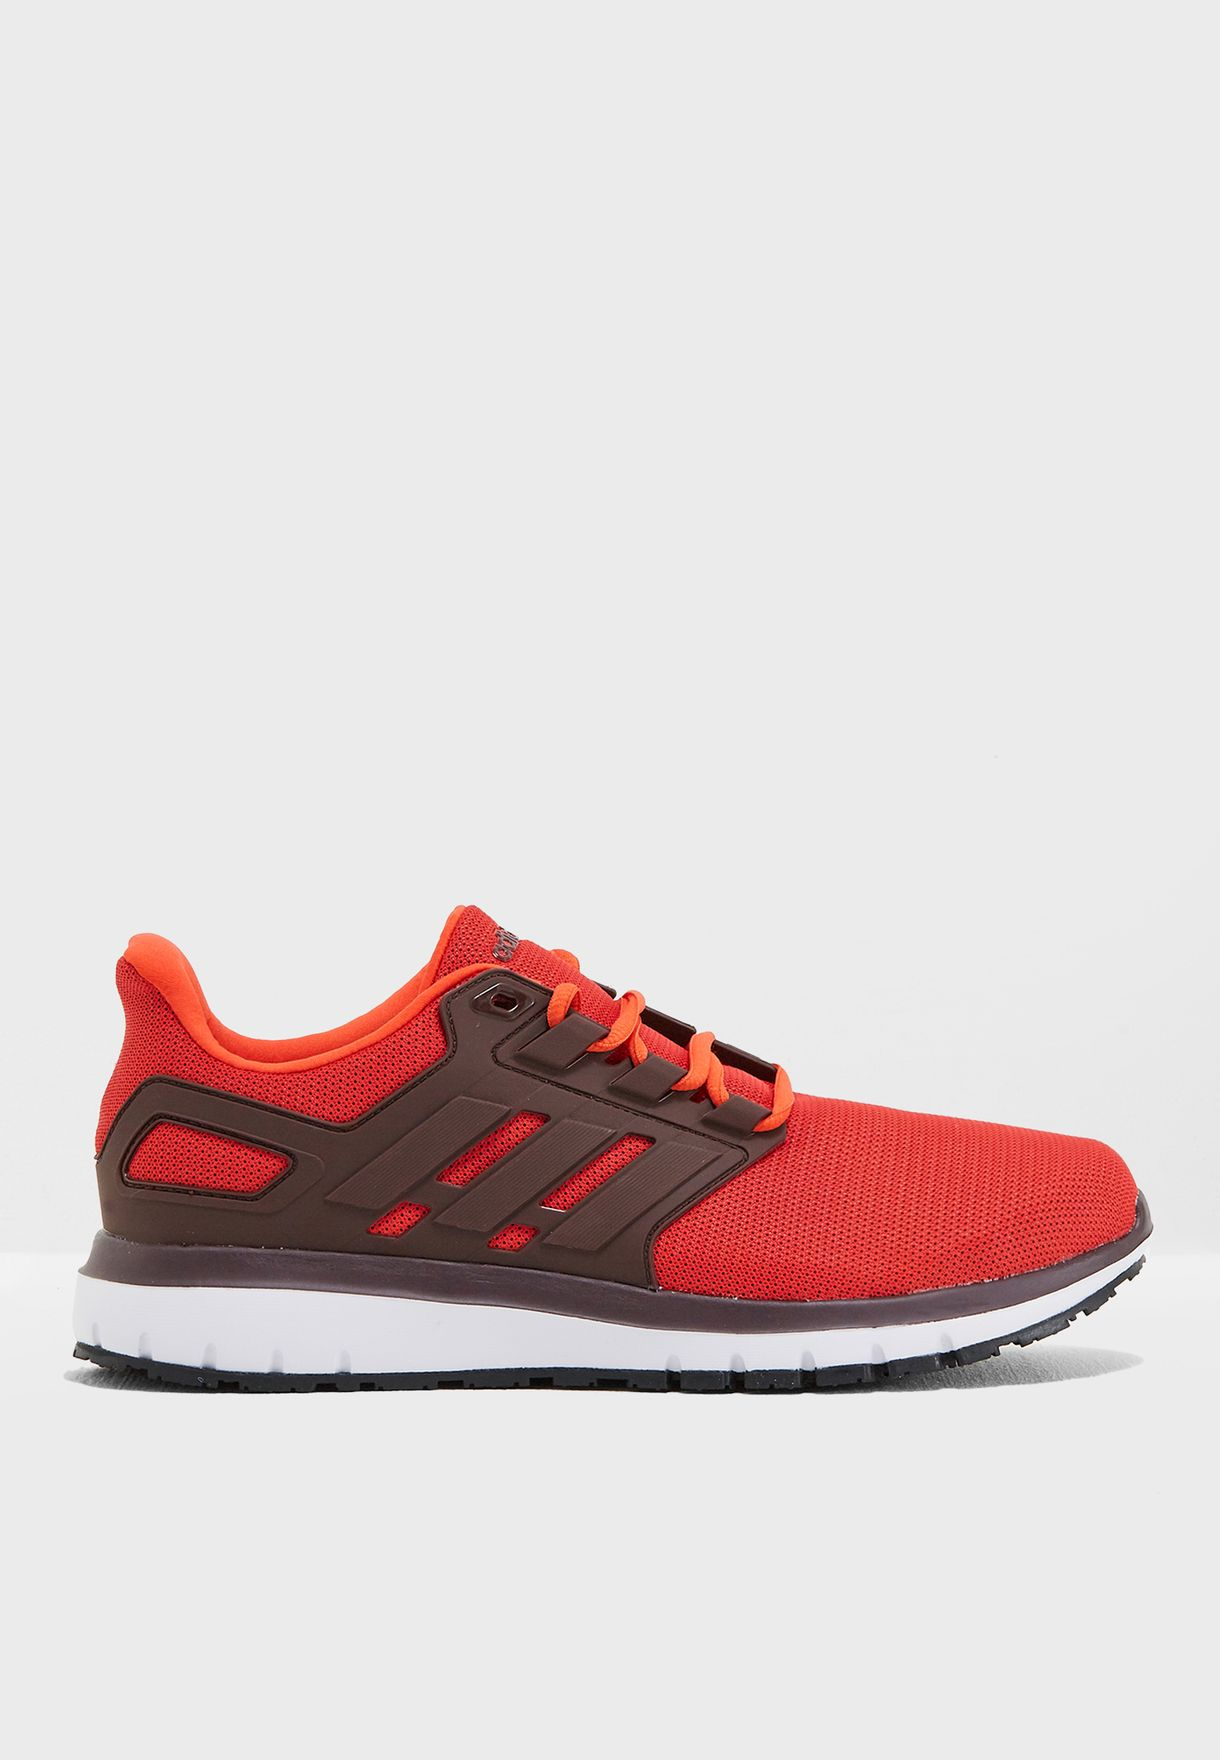 newest 967ee 49ed8 Shop adidas red Energy Cloud 2 B44754 for Men in UAE - AD476